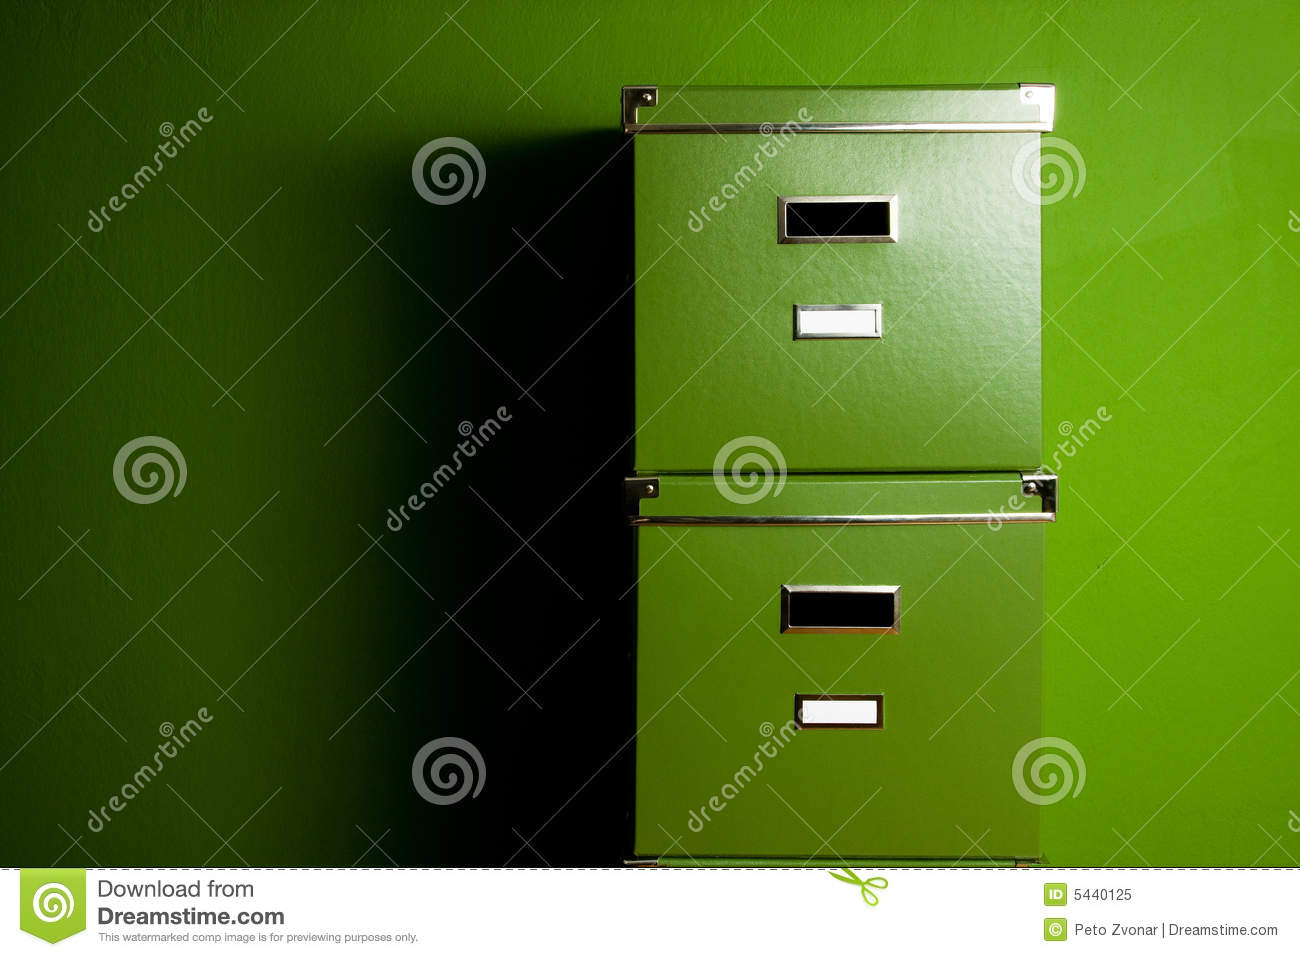 Green boxes